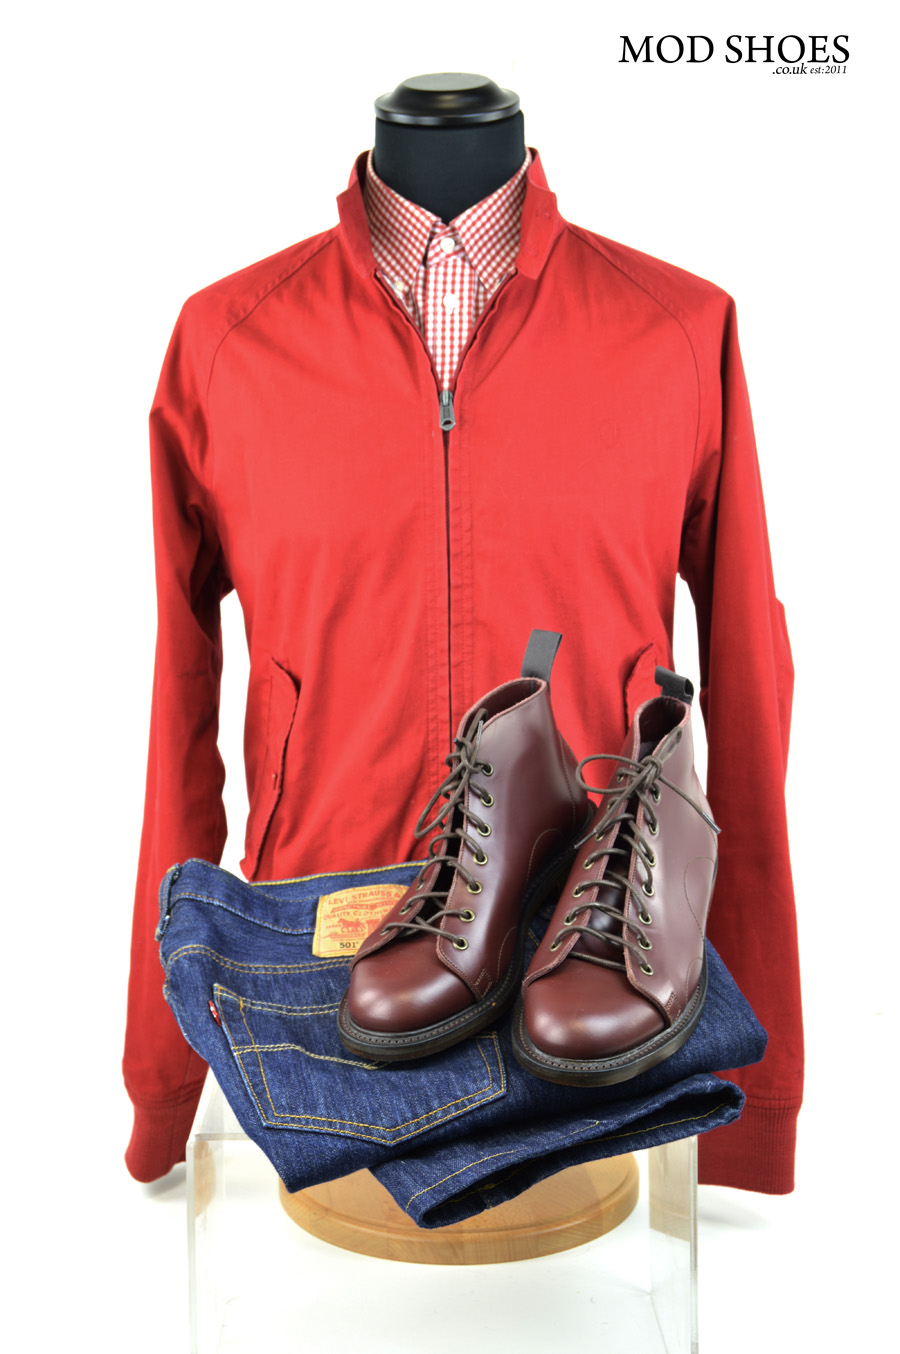 modshoes oxblood monkey boots and red harrington